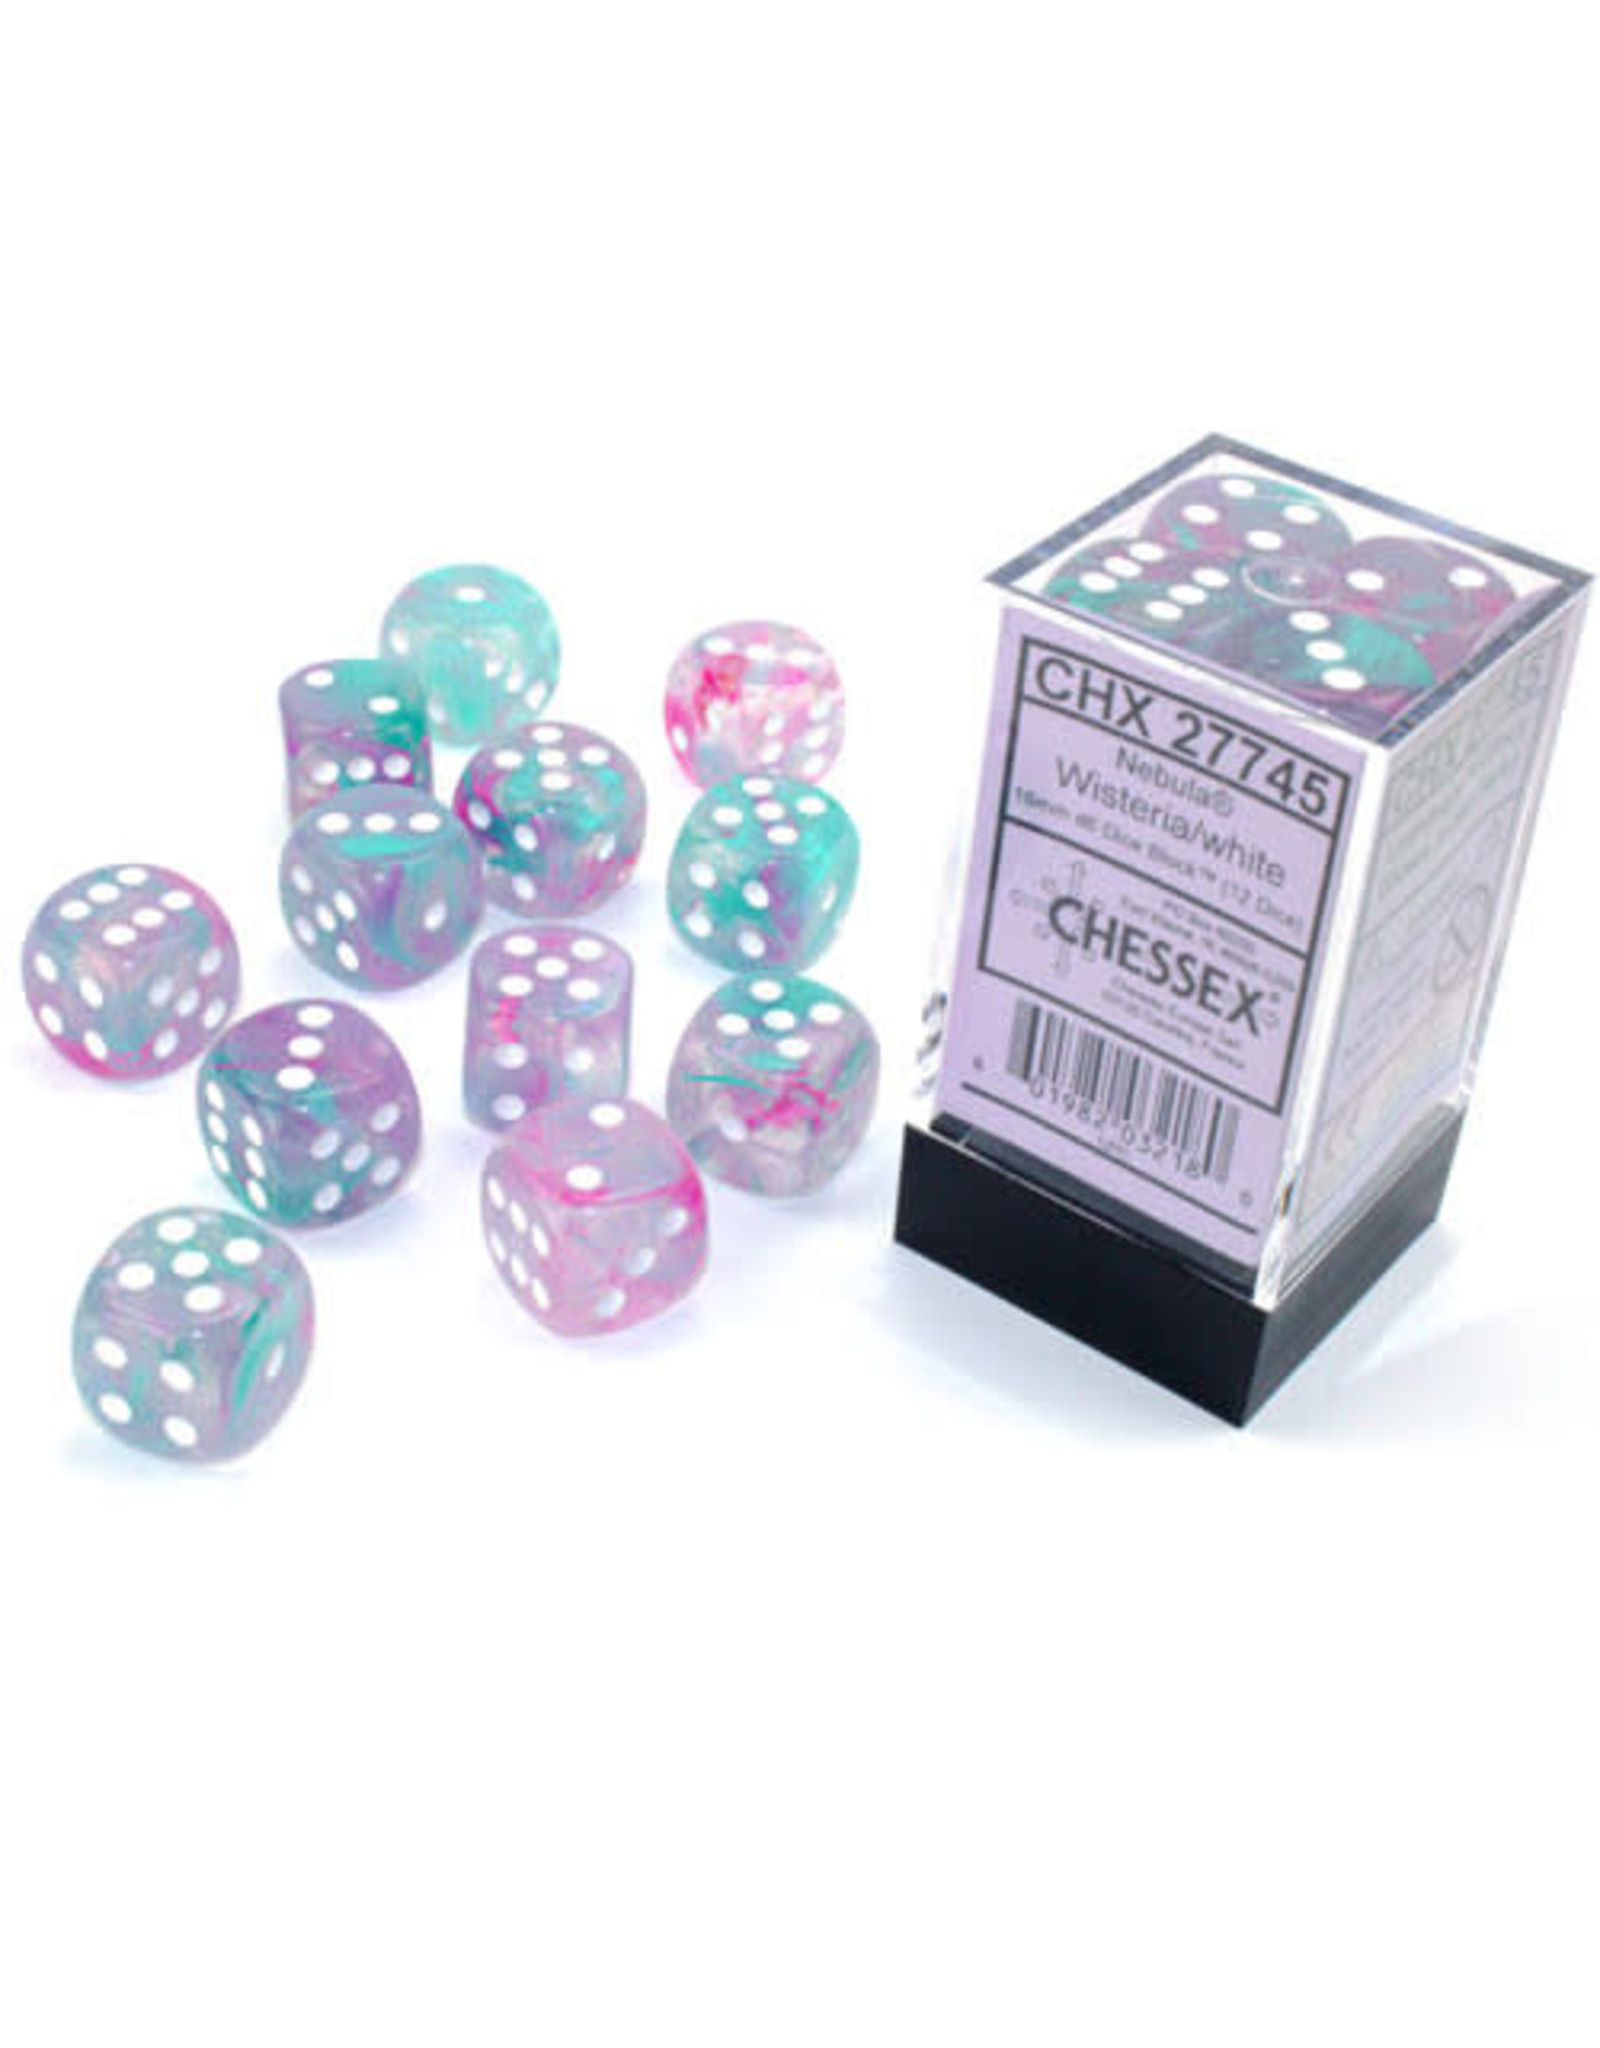 Chessex d6Cube 16mm Luminary NB Wisteria wh (12)